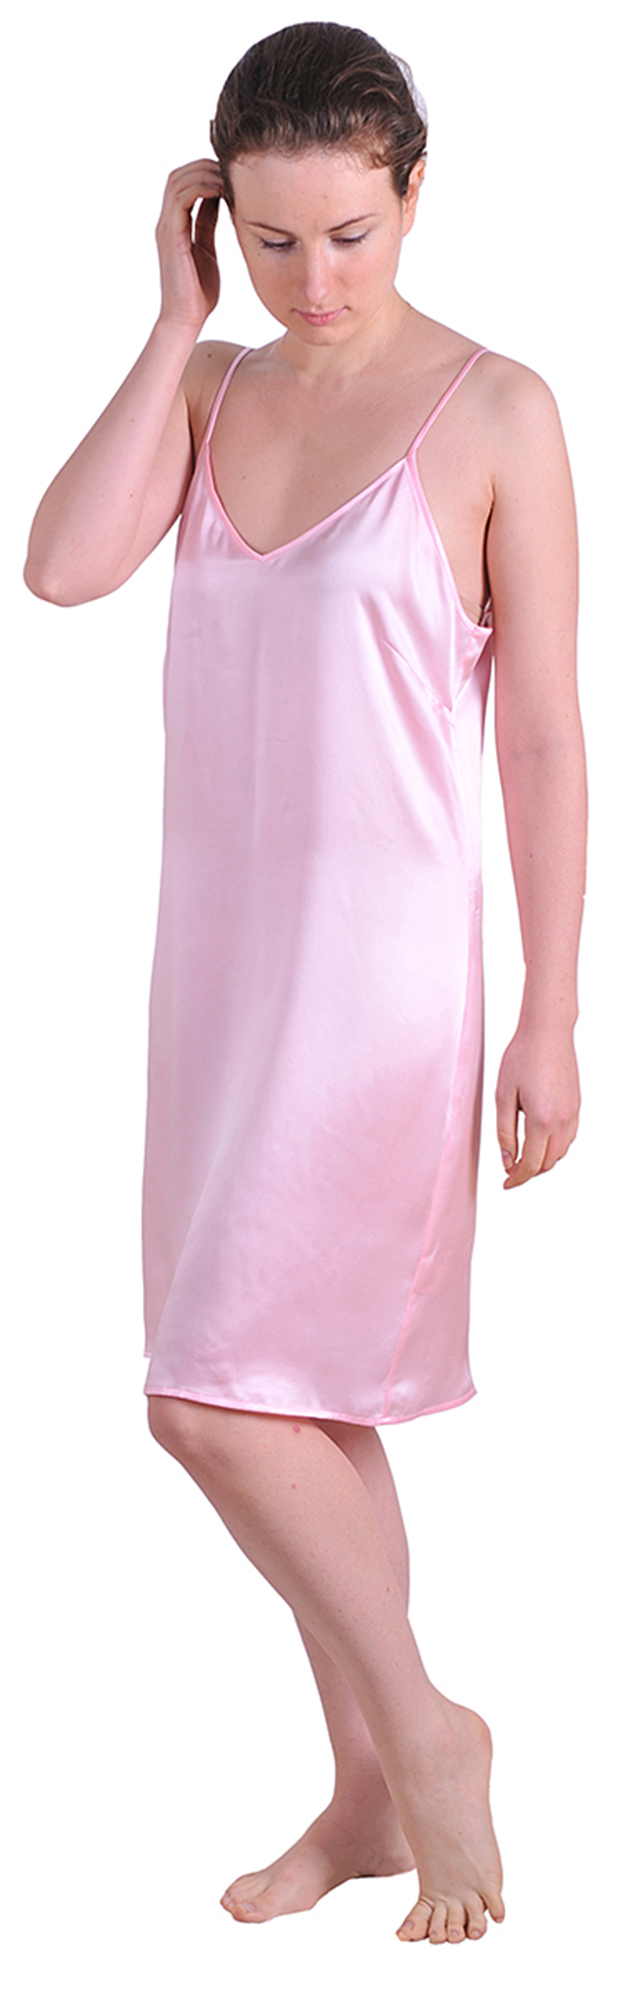 MARYCRAFTS SILK NIGHTIE SLEEP DRESS SLIP NIGHT GOWN ... - photo#27